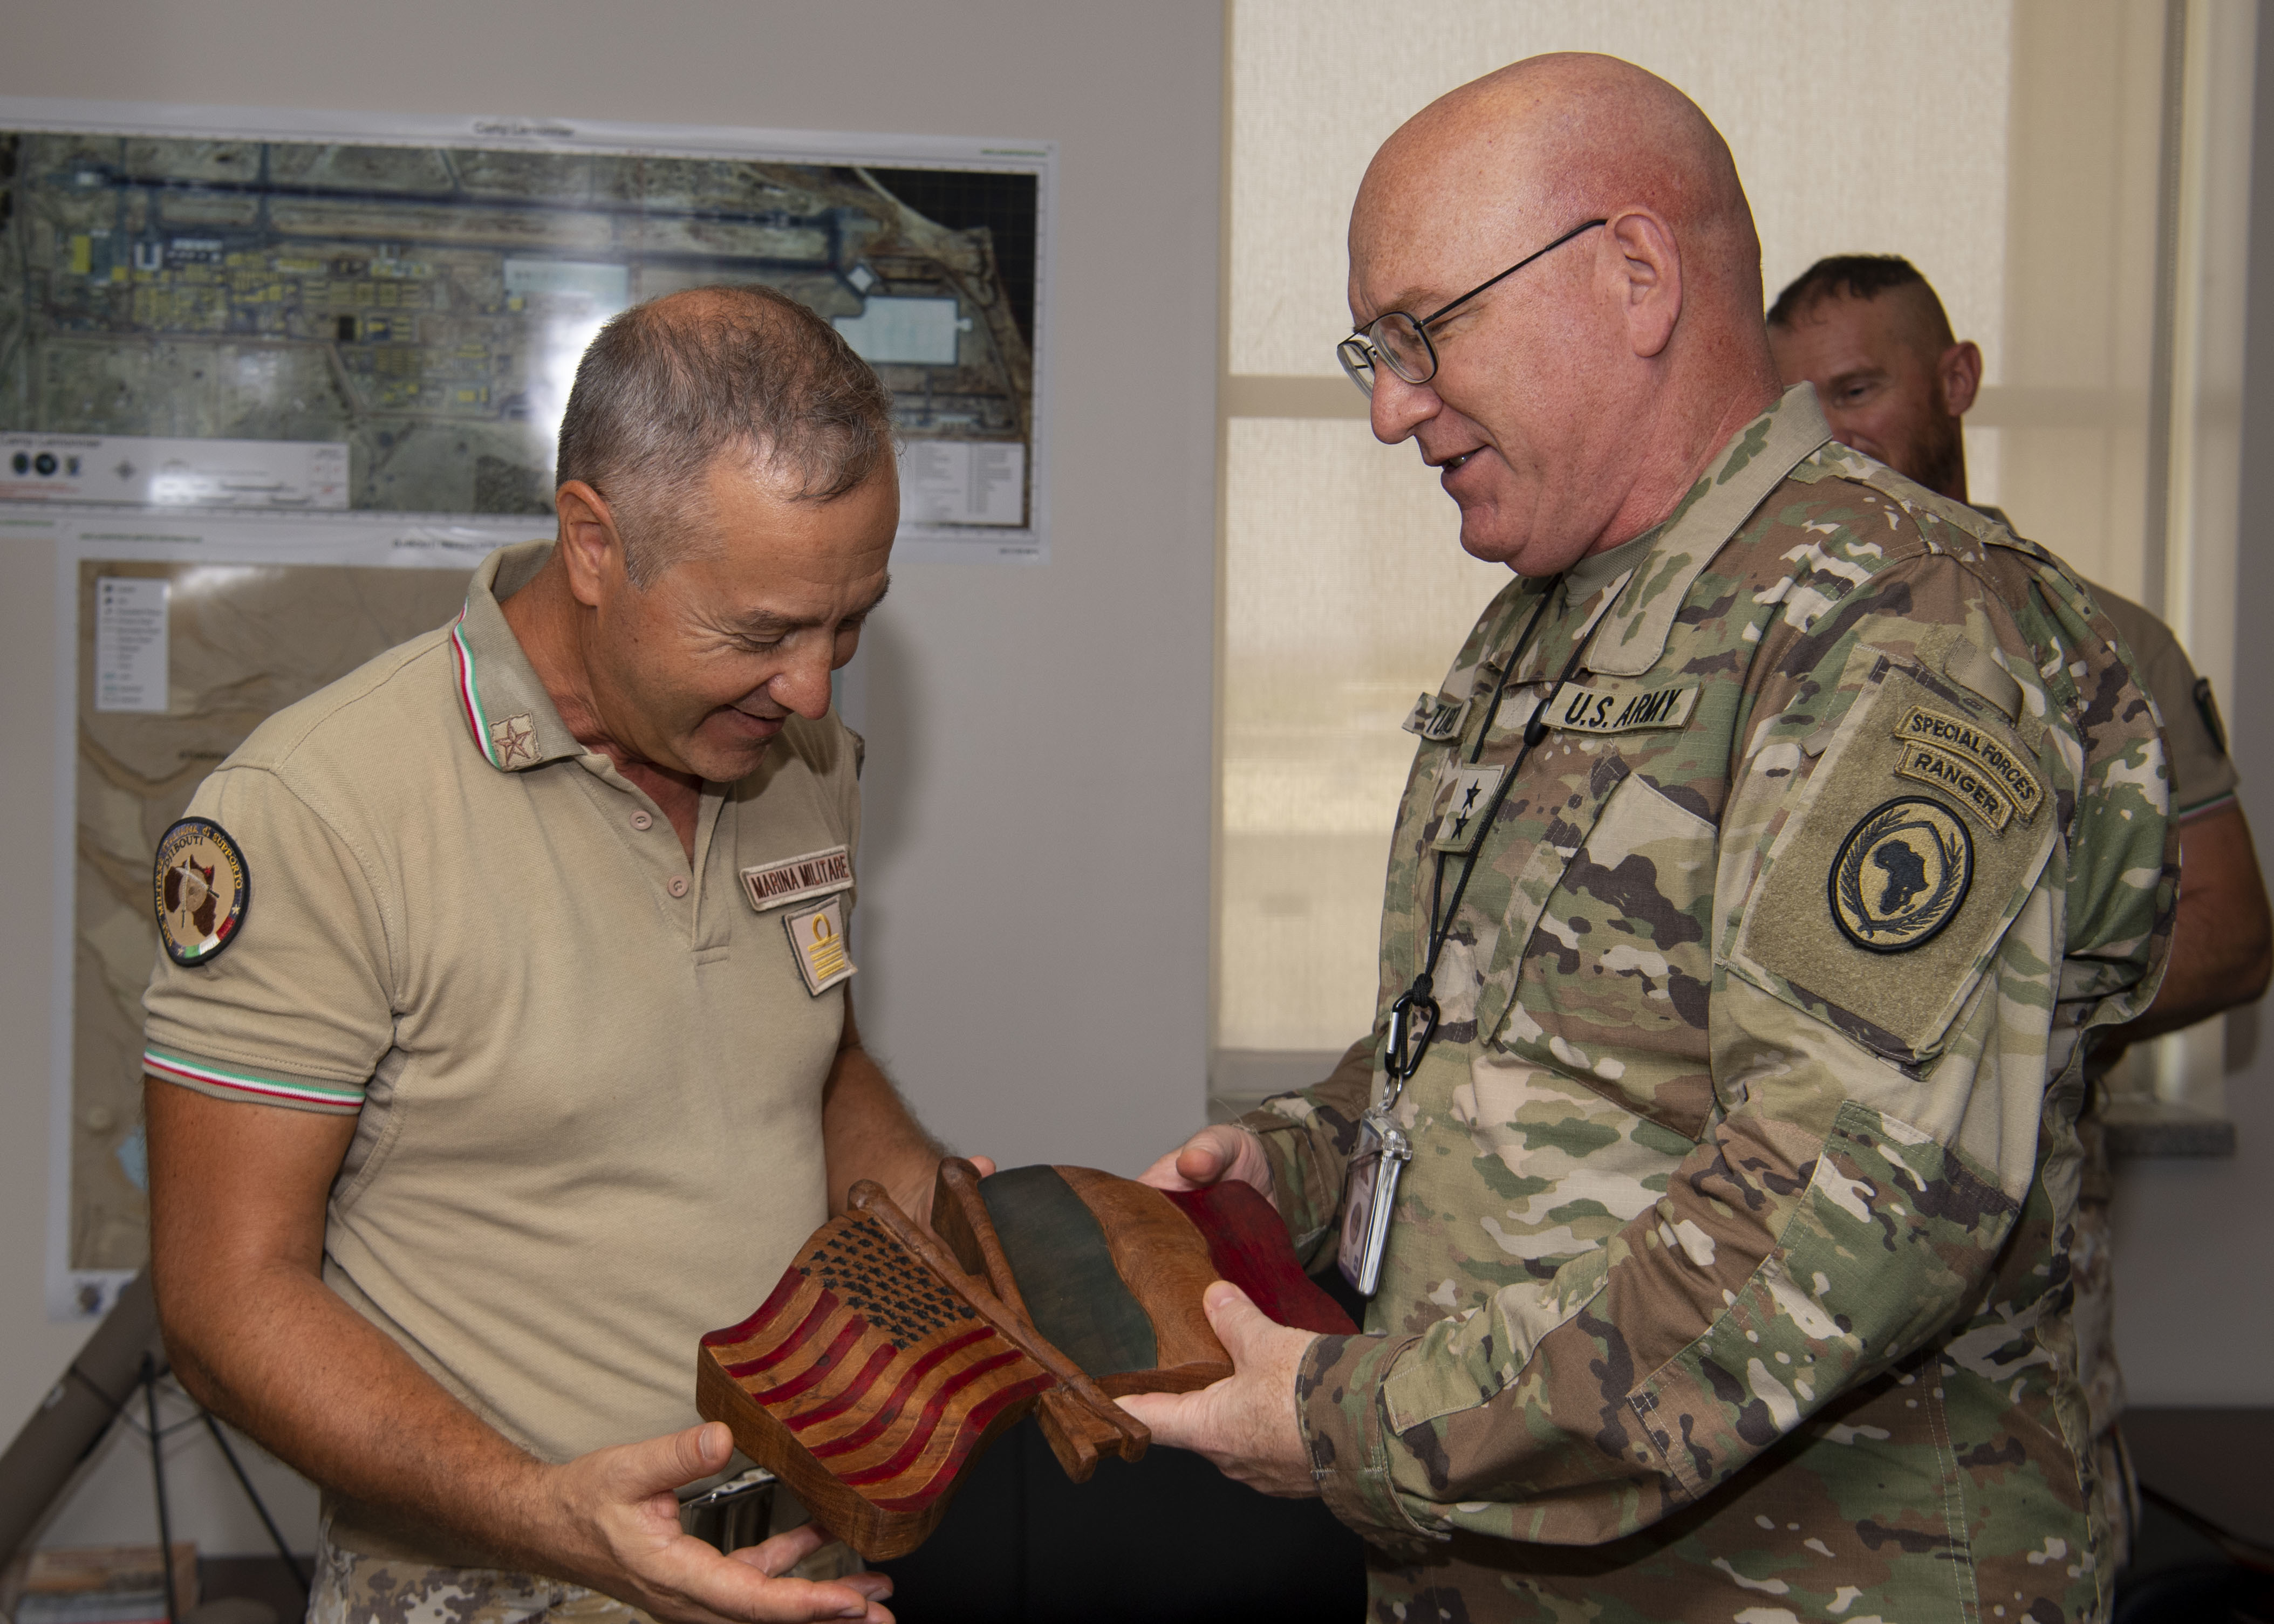 U.S. Army Maj. Gen. Michael D. Turello, commanding general, Combined Joint Task Force-Horn of Africa (CJTF-HOA), right, presents Italian navy Capt. Liborio Palombella, deputy commander, Italian Navy Training Center, left, with a gift after his visit to Camp Lemonnier, Djibouti, July 15, 2019. Palombella visited Camp Lemonnier to learn about the CJTF-HOA mission and its contributions to East Africa. (U.S. Air Force photo by Staff Sgt. J.D. Strong II)